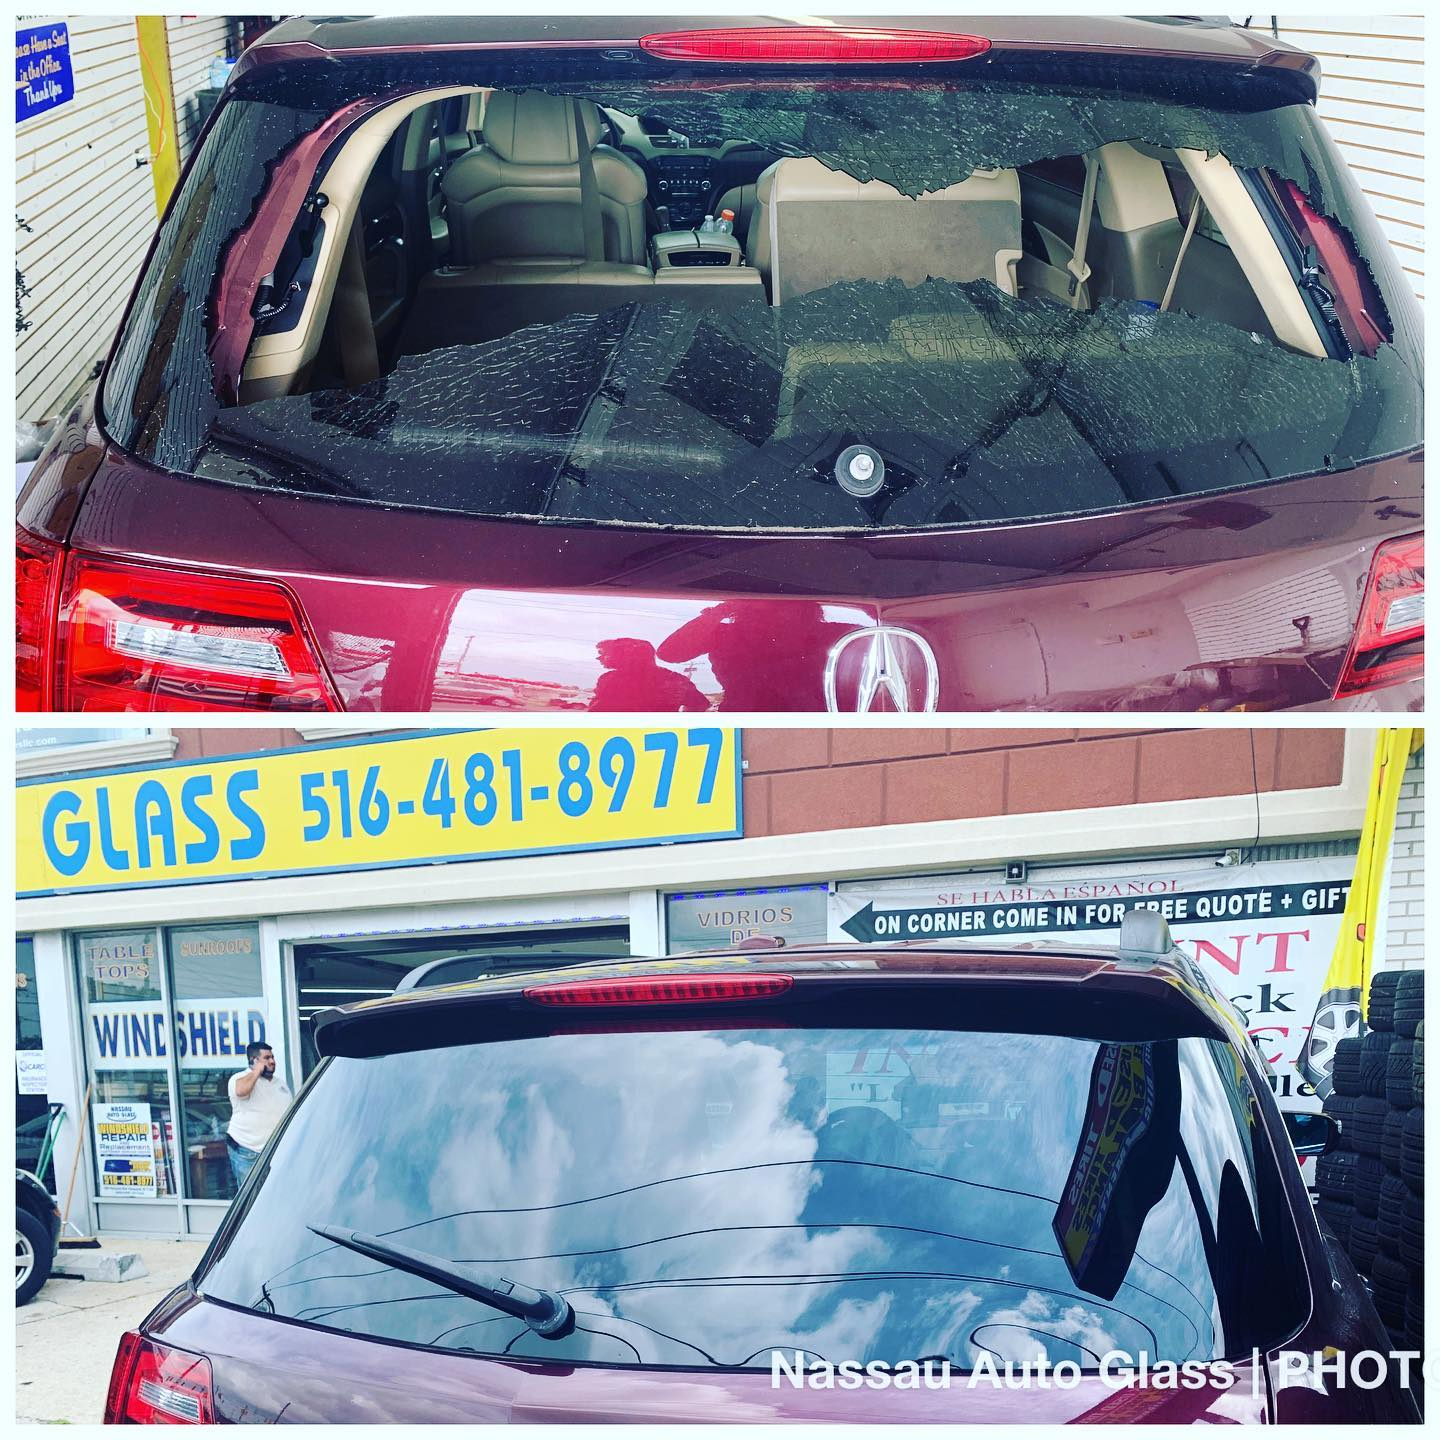 Nassau Auto Glass Services: Before & After Picture 15